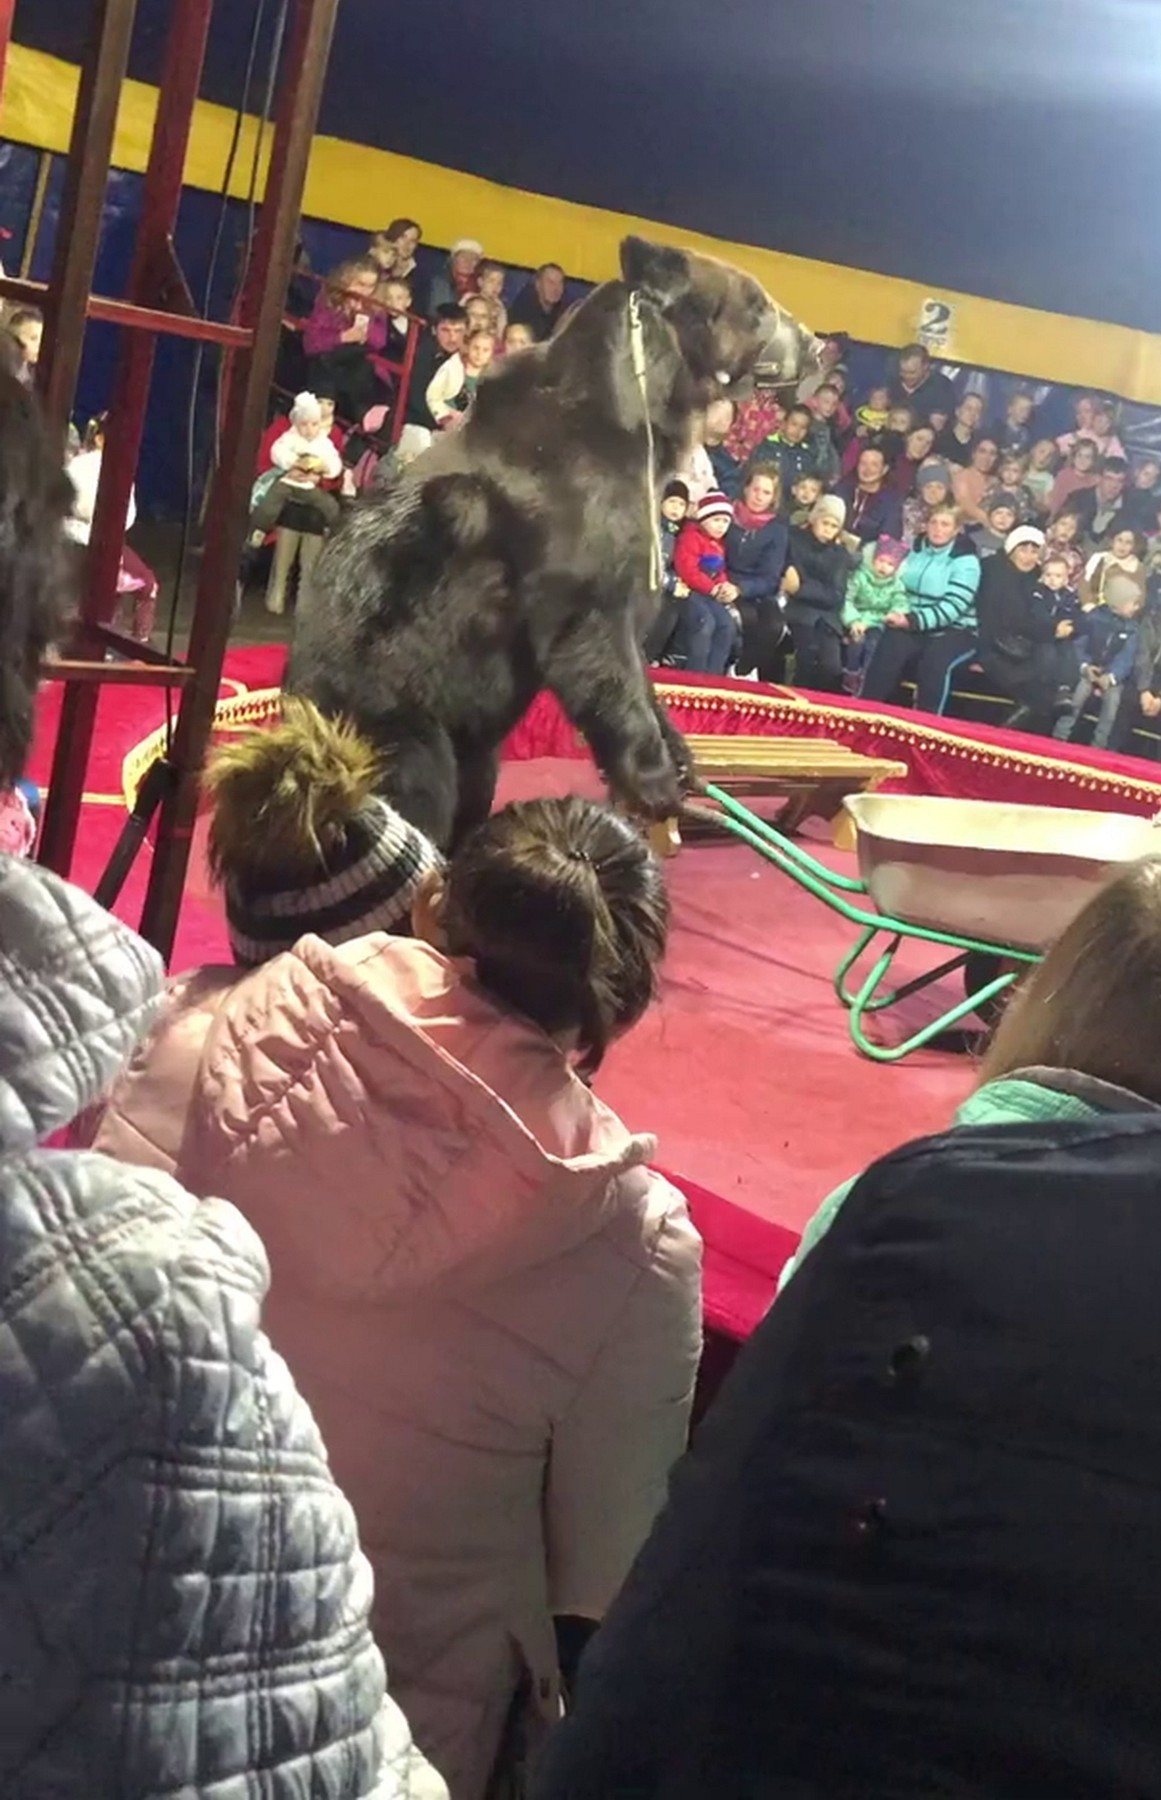 Bear attacked the trainer during the performance in the tent circus in Olonets town of Karelia republic., Image: 478855285, License: Rights-managed, Restrictions: , Model Release: no, Credit line: Anna Liesowska / east2west news / East2West News / Profimedia